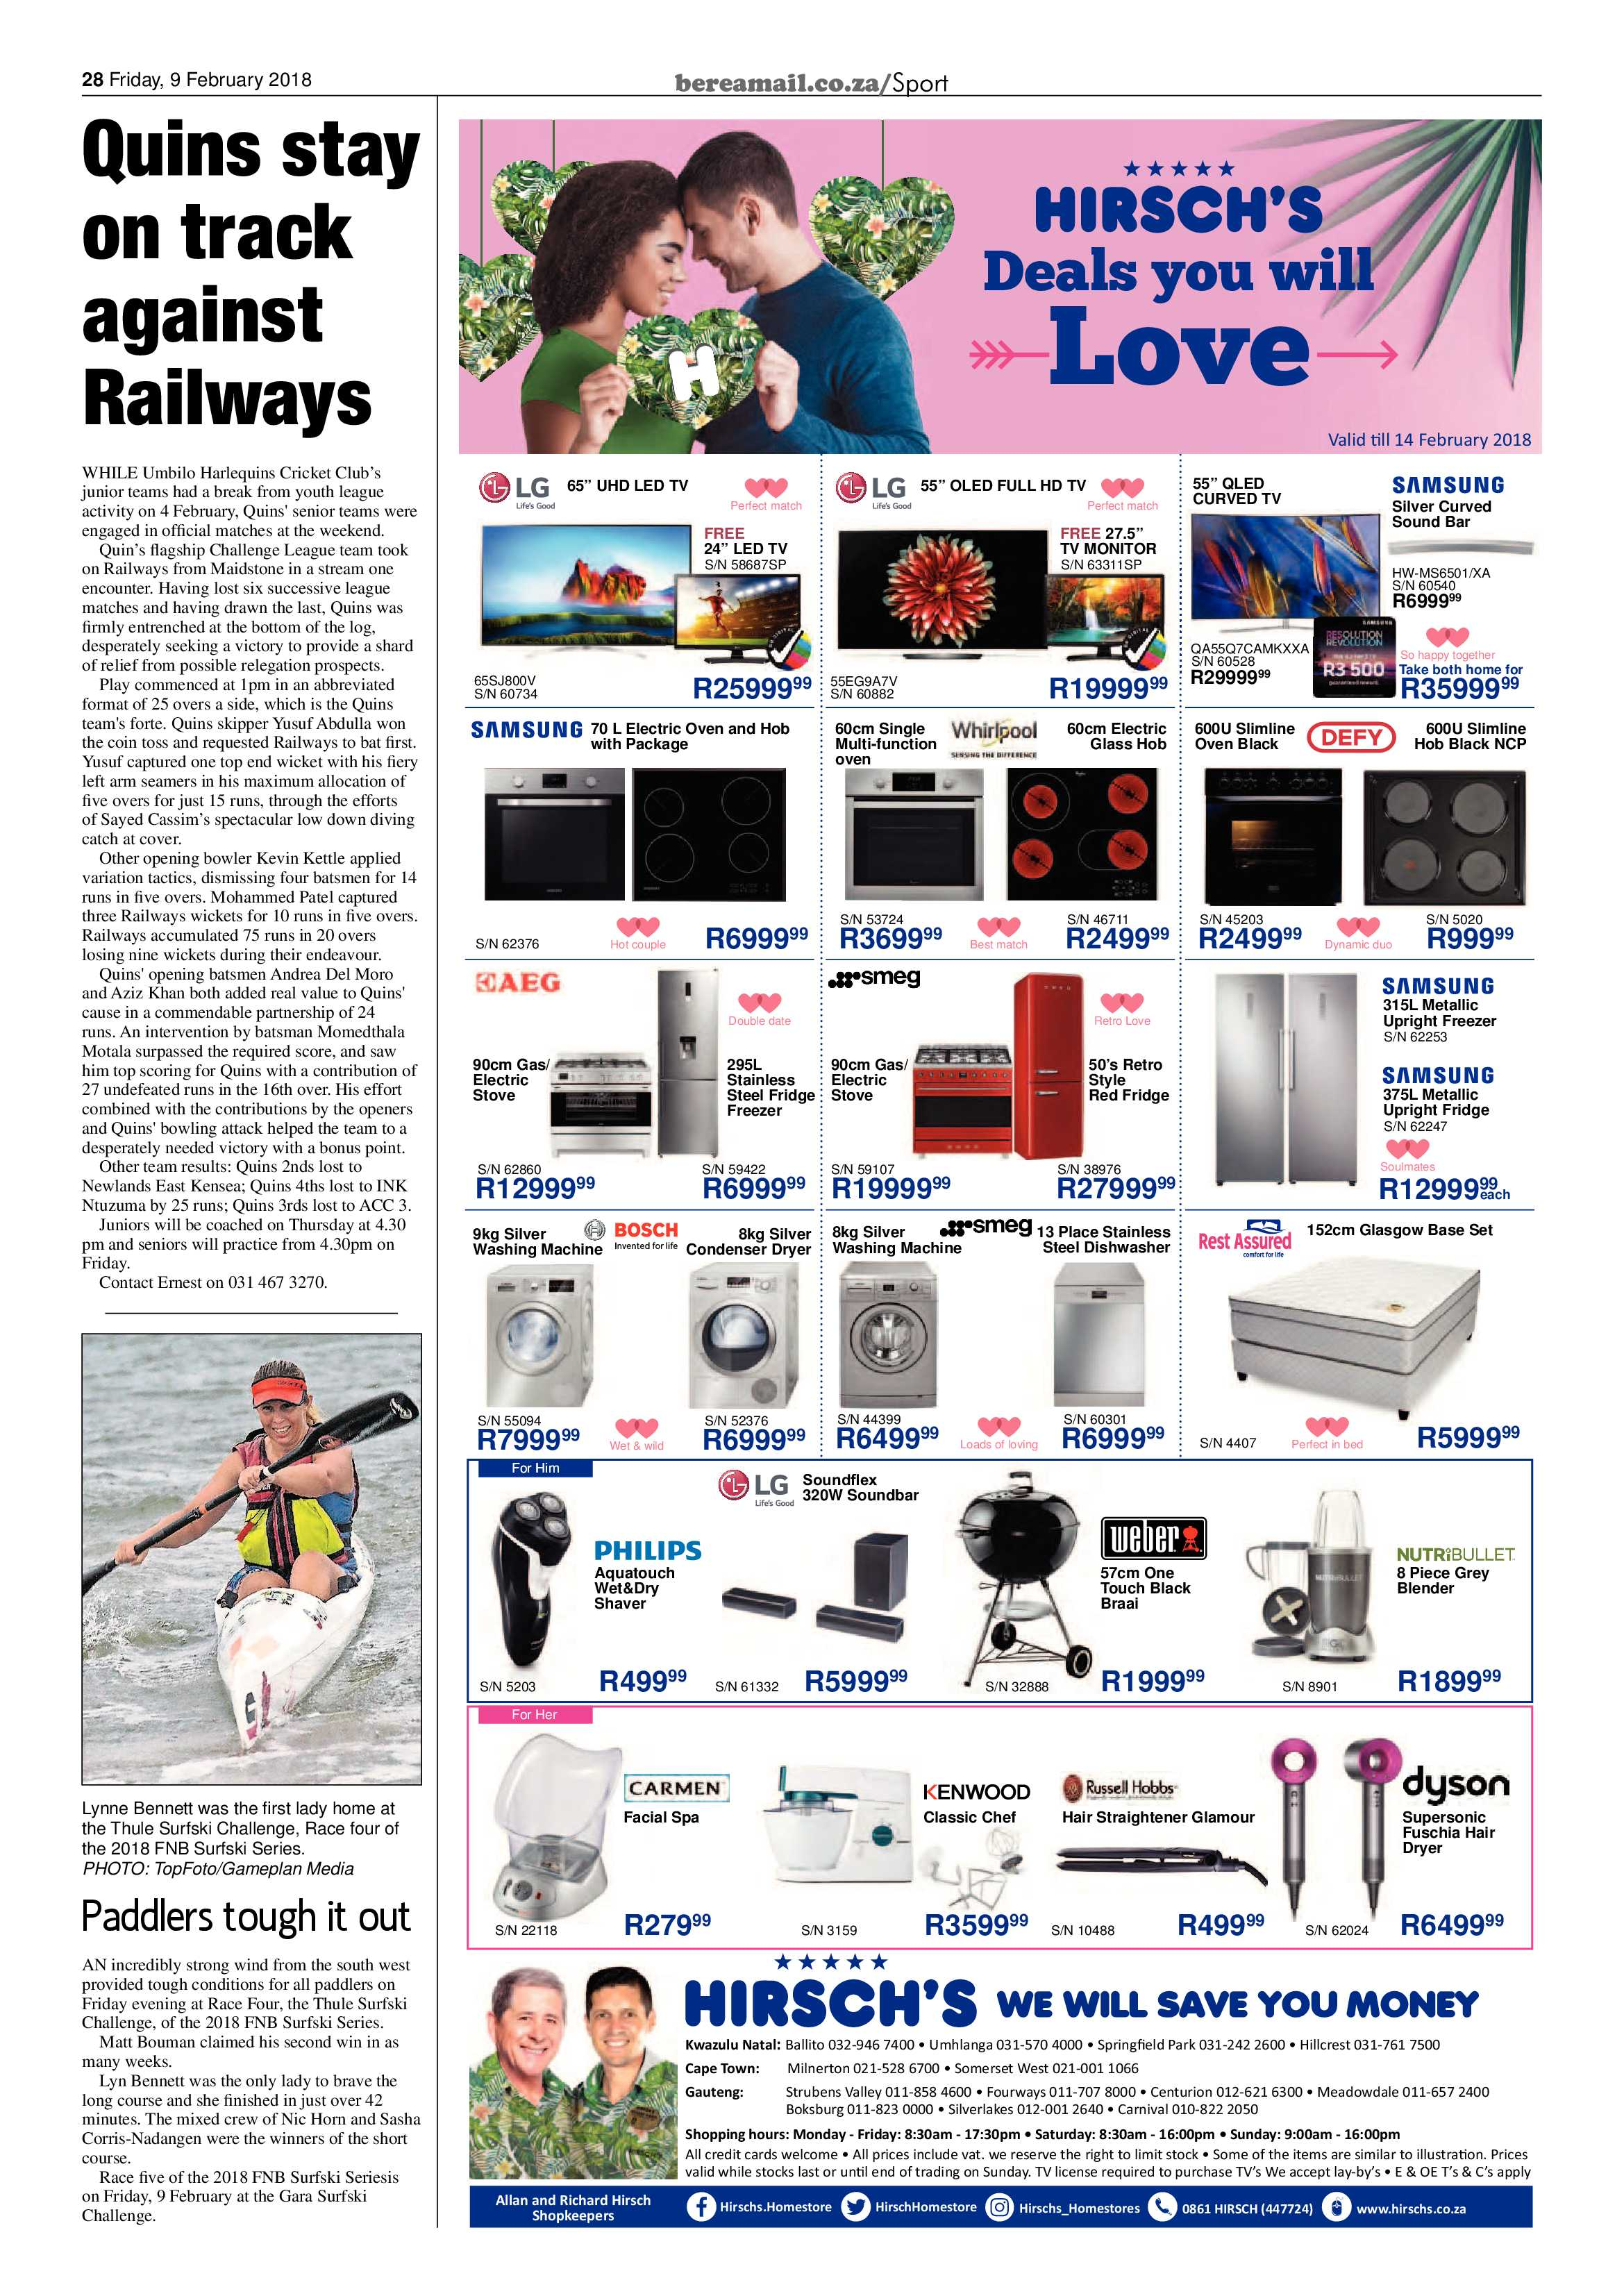 berea-mail-9-february-2018-epapers-page-28